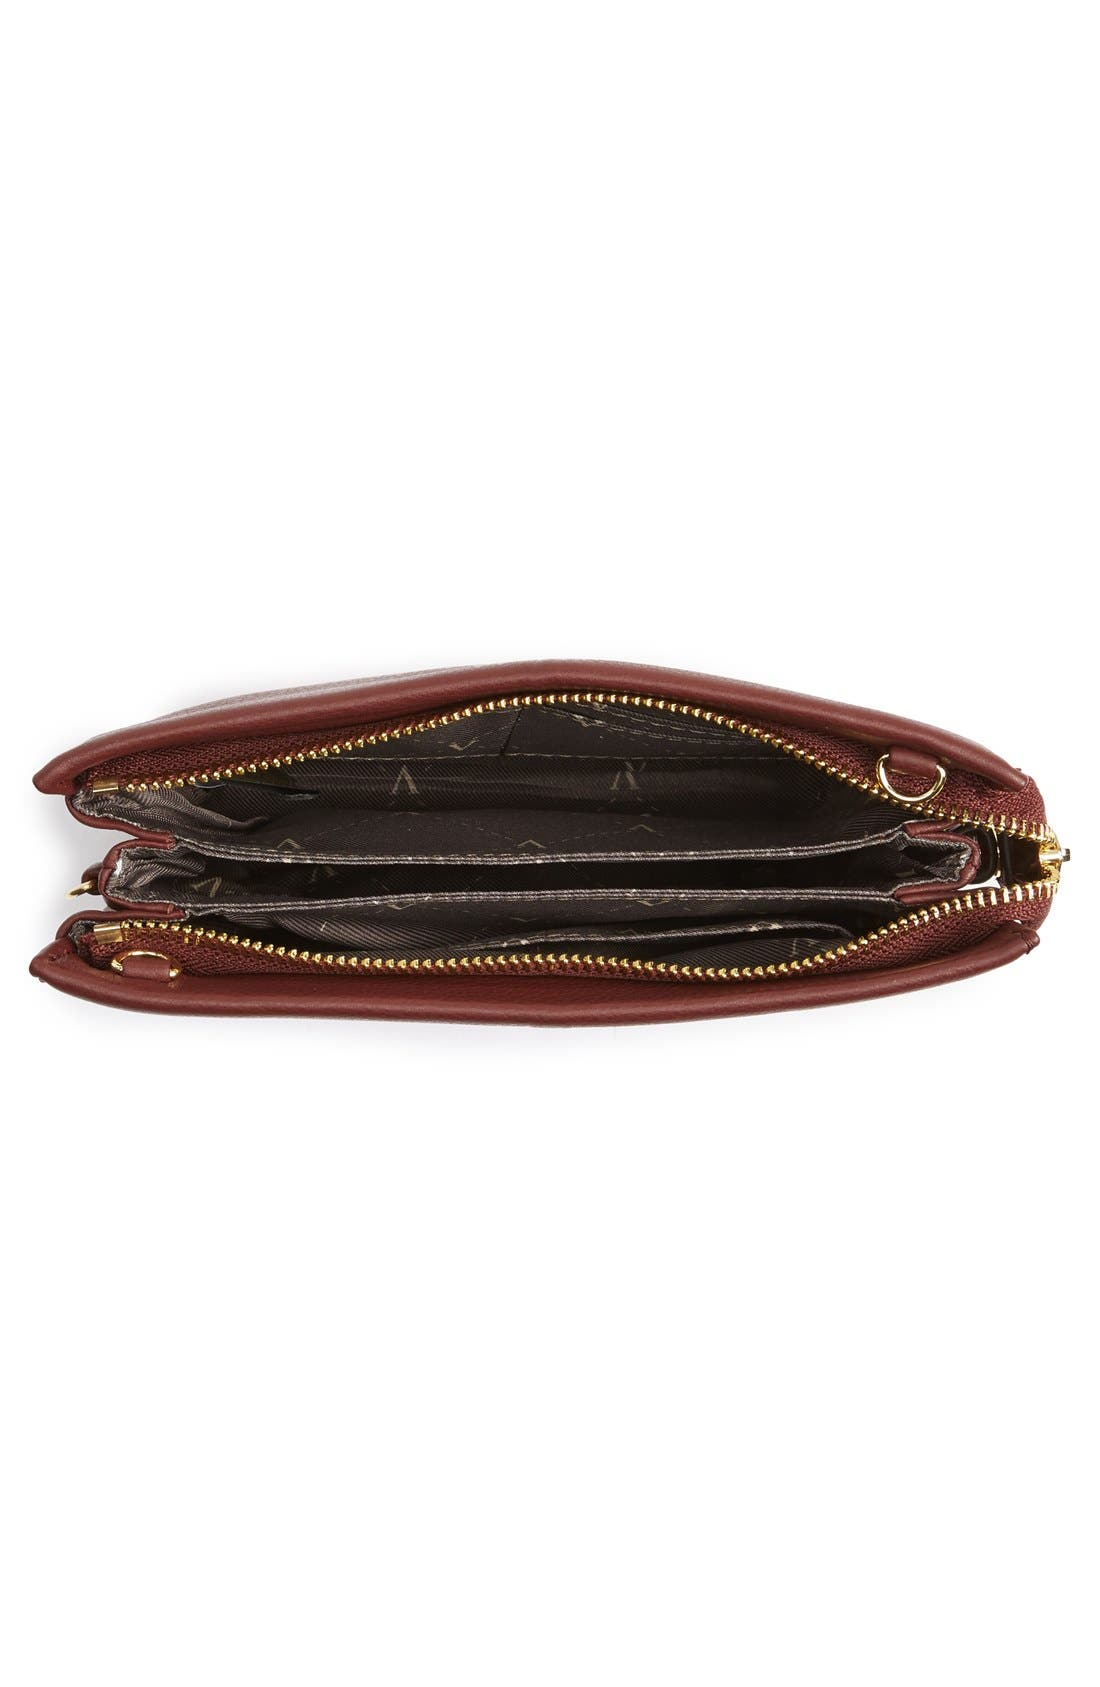 'Cami' Leather Crossbody Bag,                             Alternate thumbnail 131, color,